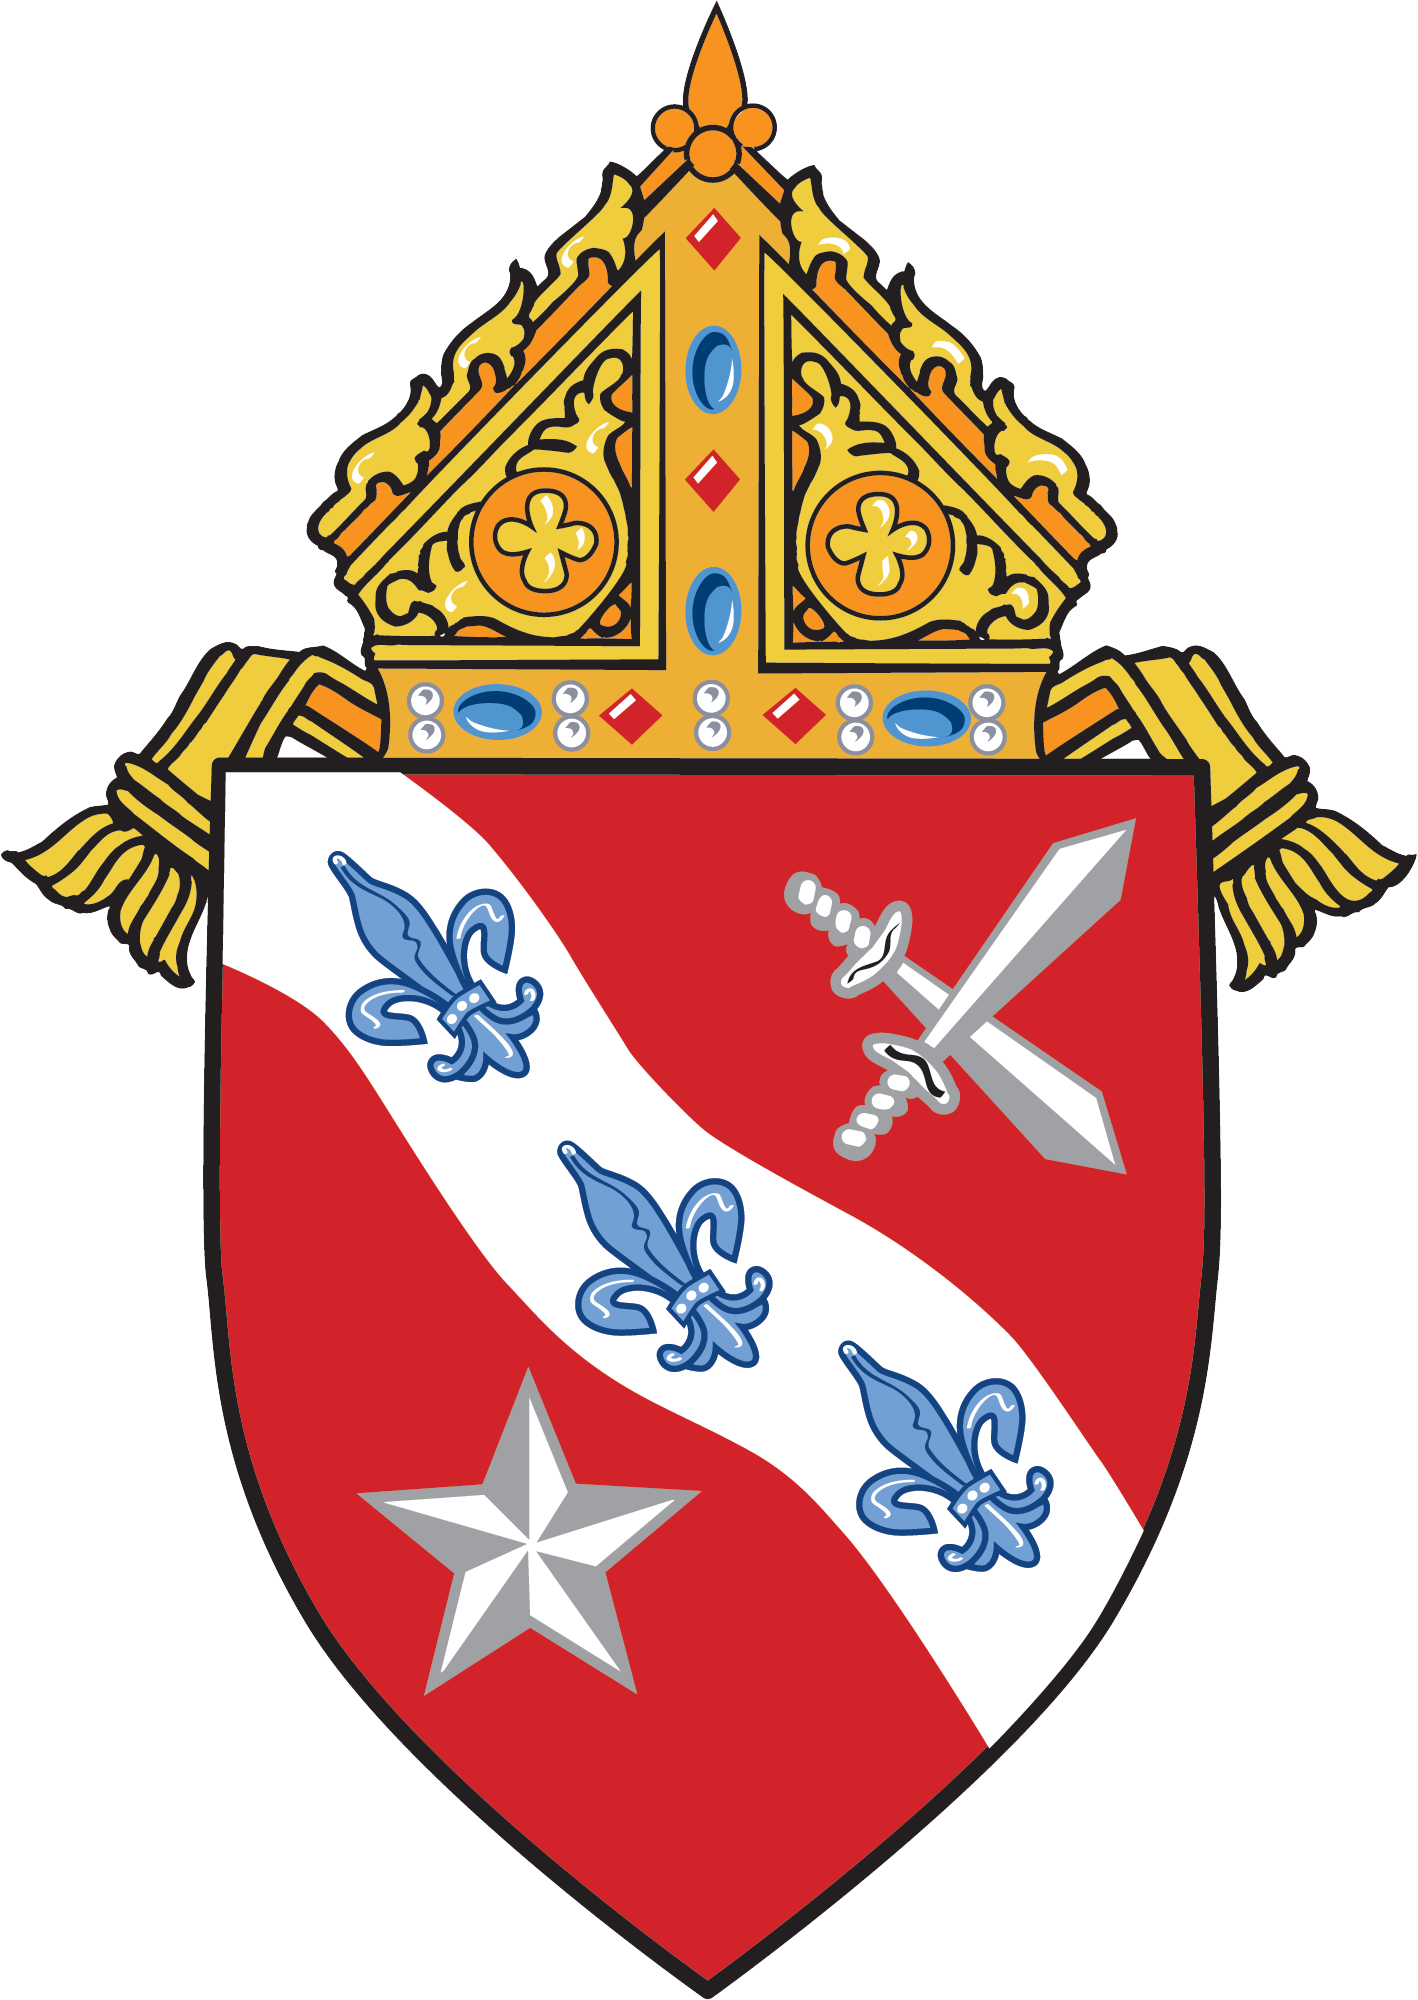 Catholic diocese of dallas the wavy line represents the trinity river whose original name was most holy trinity three fleurs de lis represent the trinity buycottarizona Image collections